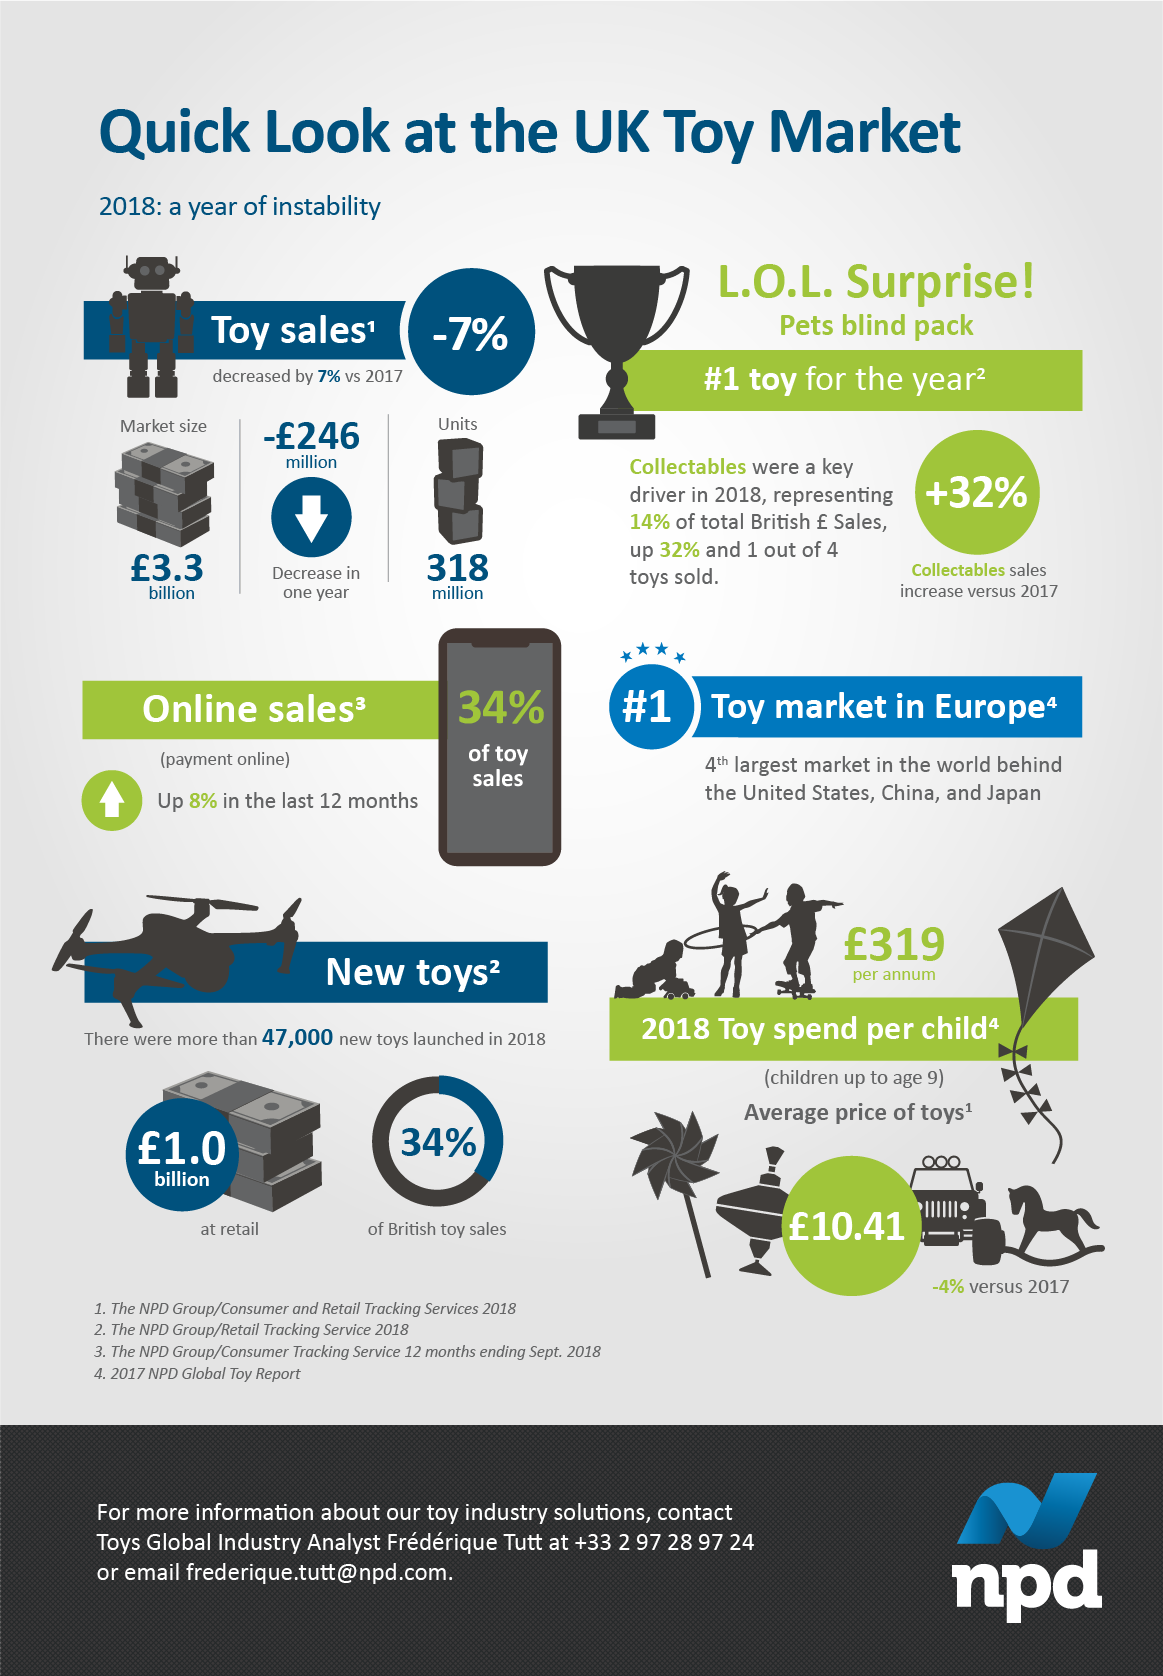 The toy market in Europe is the 4th largest market in the world behind the United States, China, and Japan